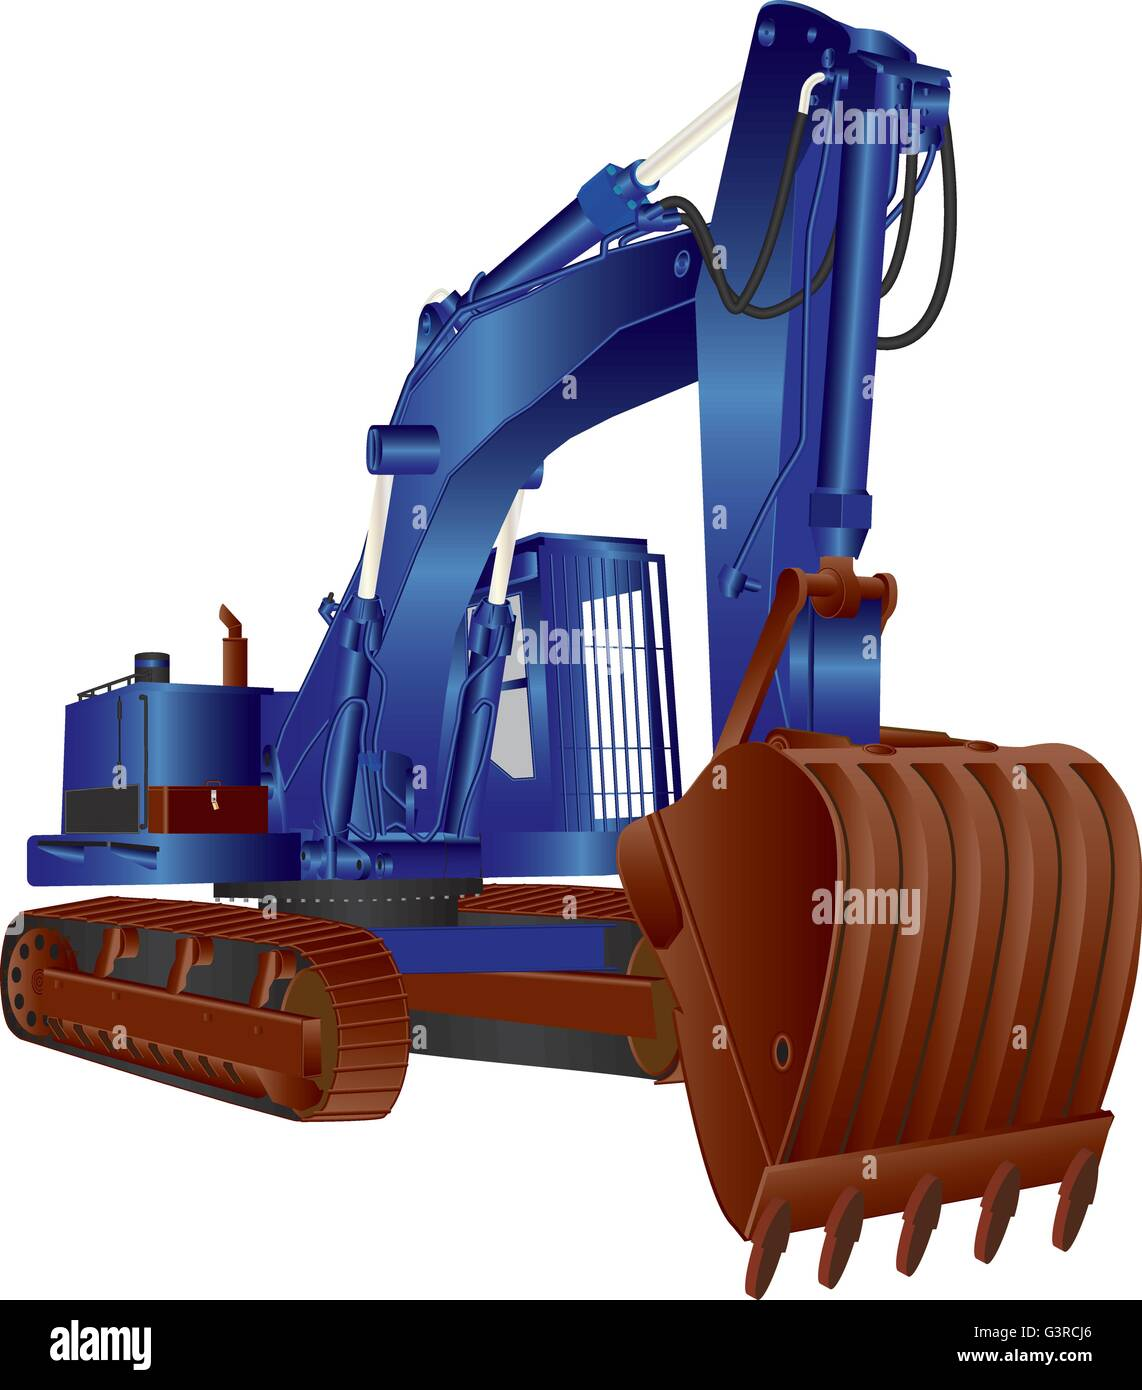 A Heavy Blue Tracked Excavator isolated on white - Stock Vector